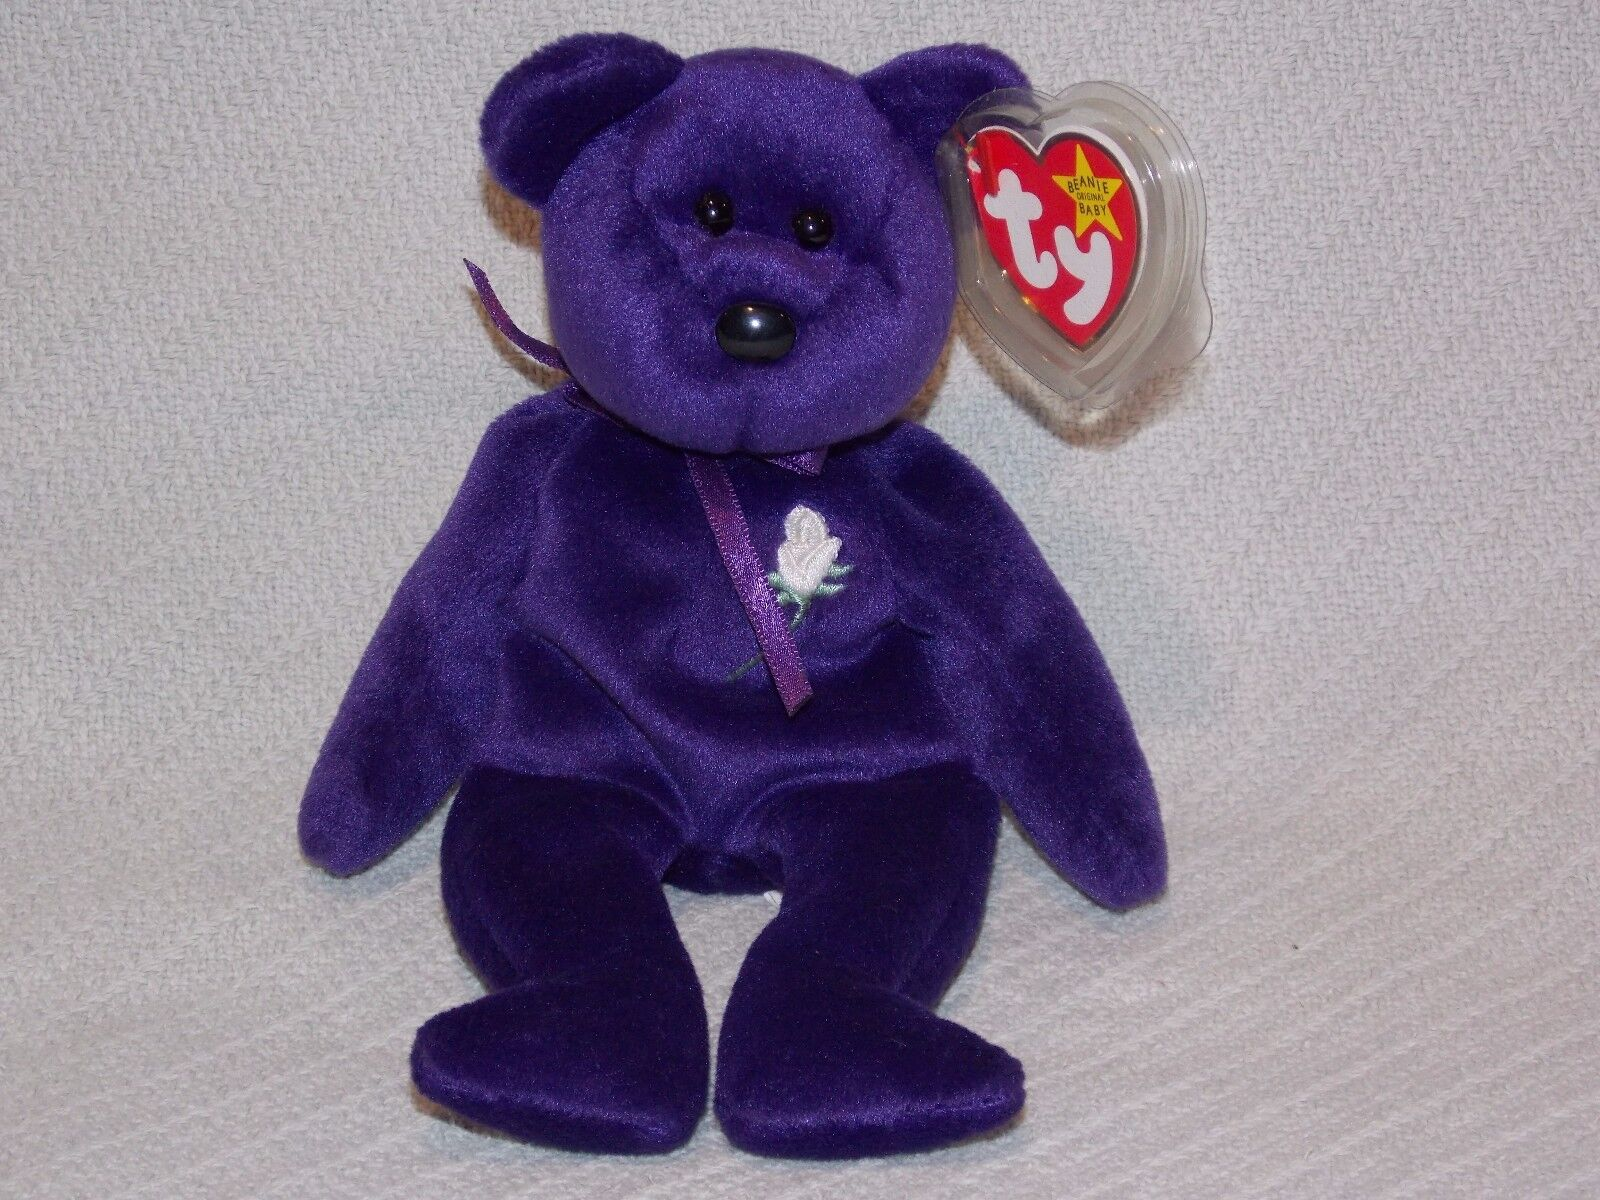 1997 Ty Beanie Baby Collection Princess  Princess Diana   Royal Purple  Tags